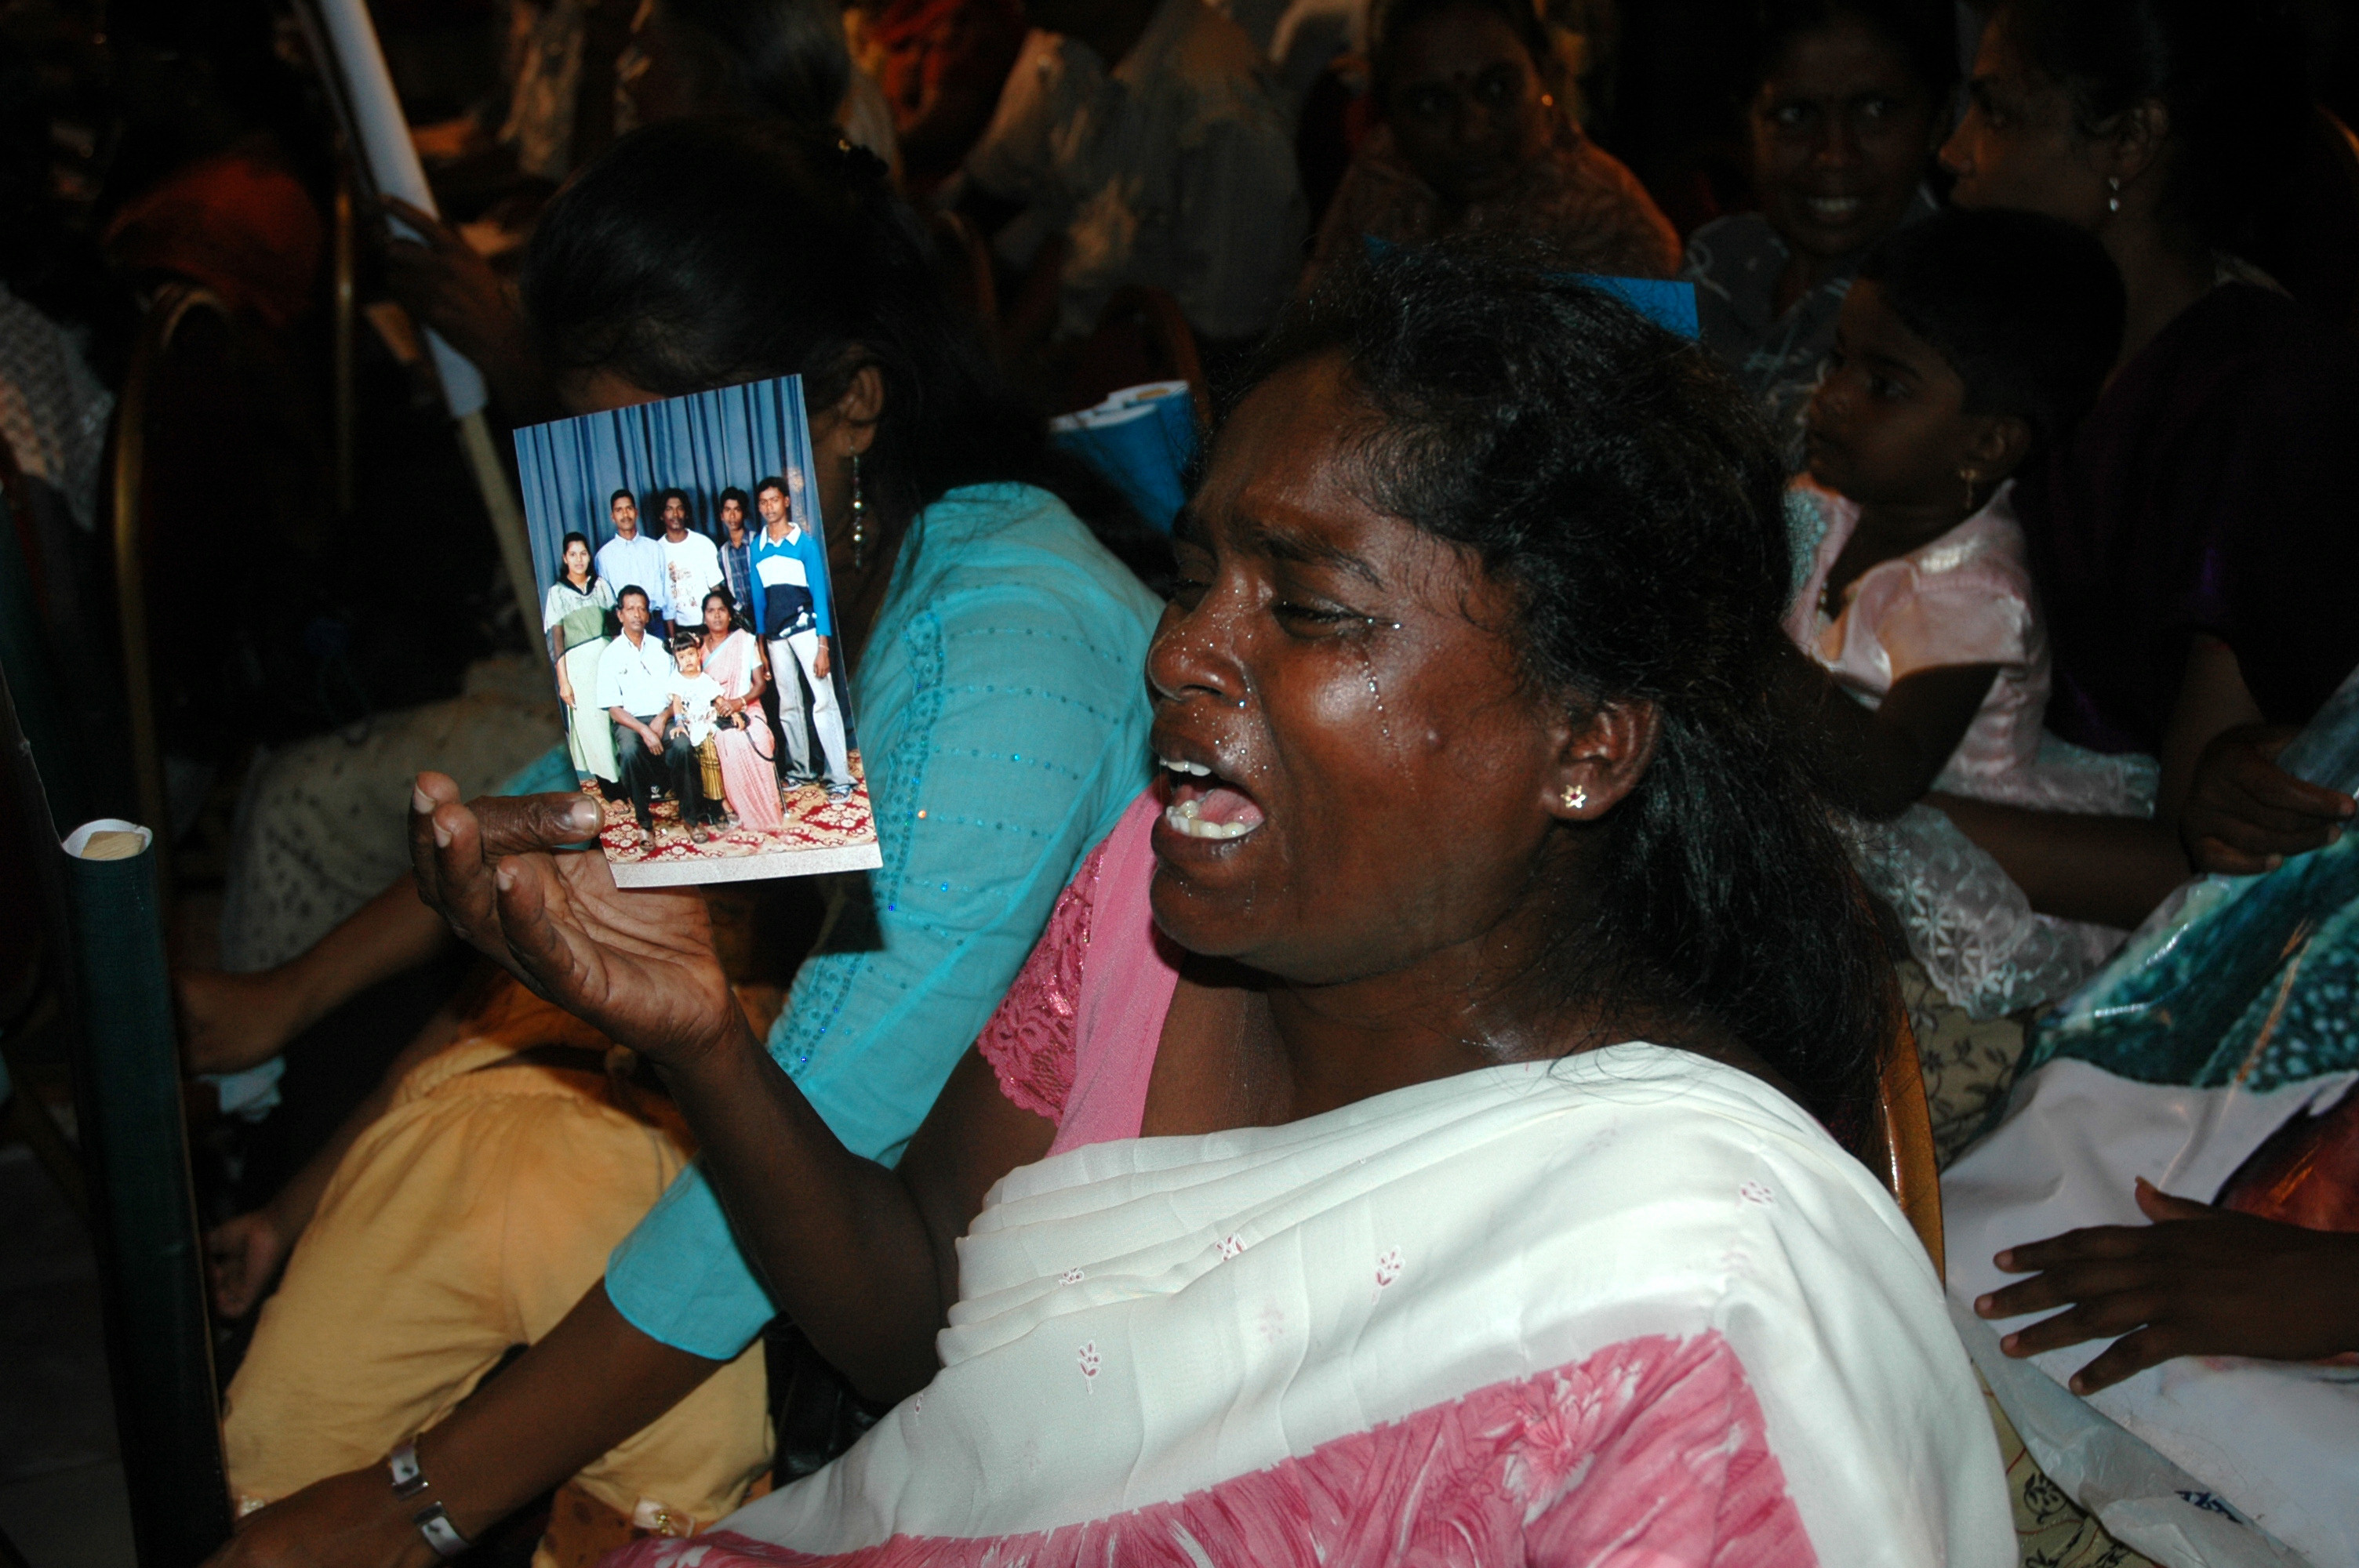 Family members of missing persons react during a meeting in the capital Colombo. There could be anywhere between 16,000 to 40,000 missing during the two and half decade war that ended in May 2009.